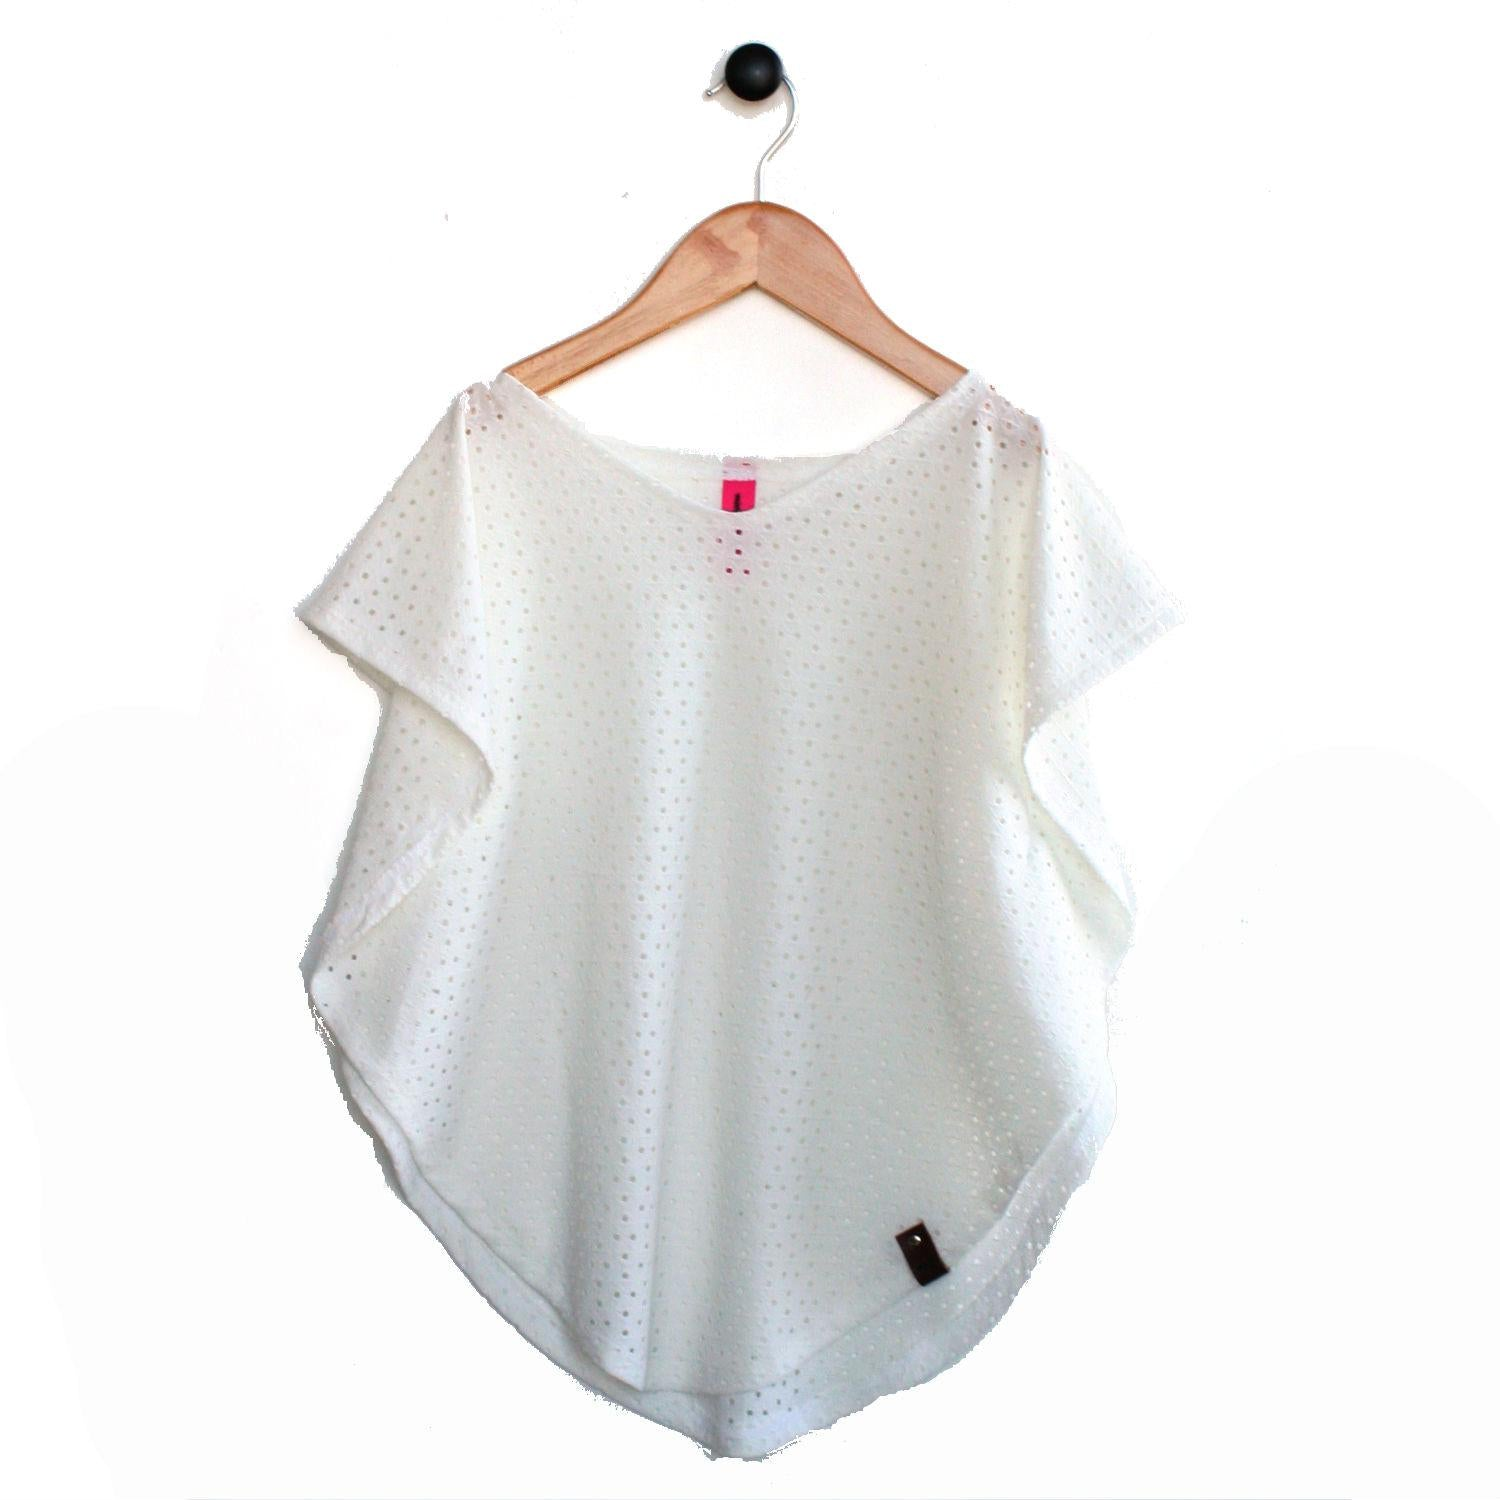 Modern swimsuit cover up in white colour for trendy girls by Mini Street